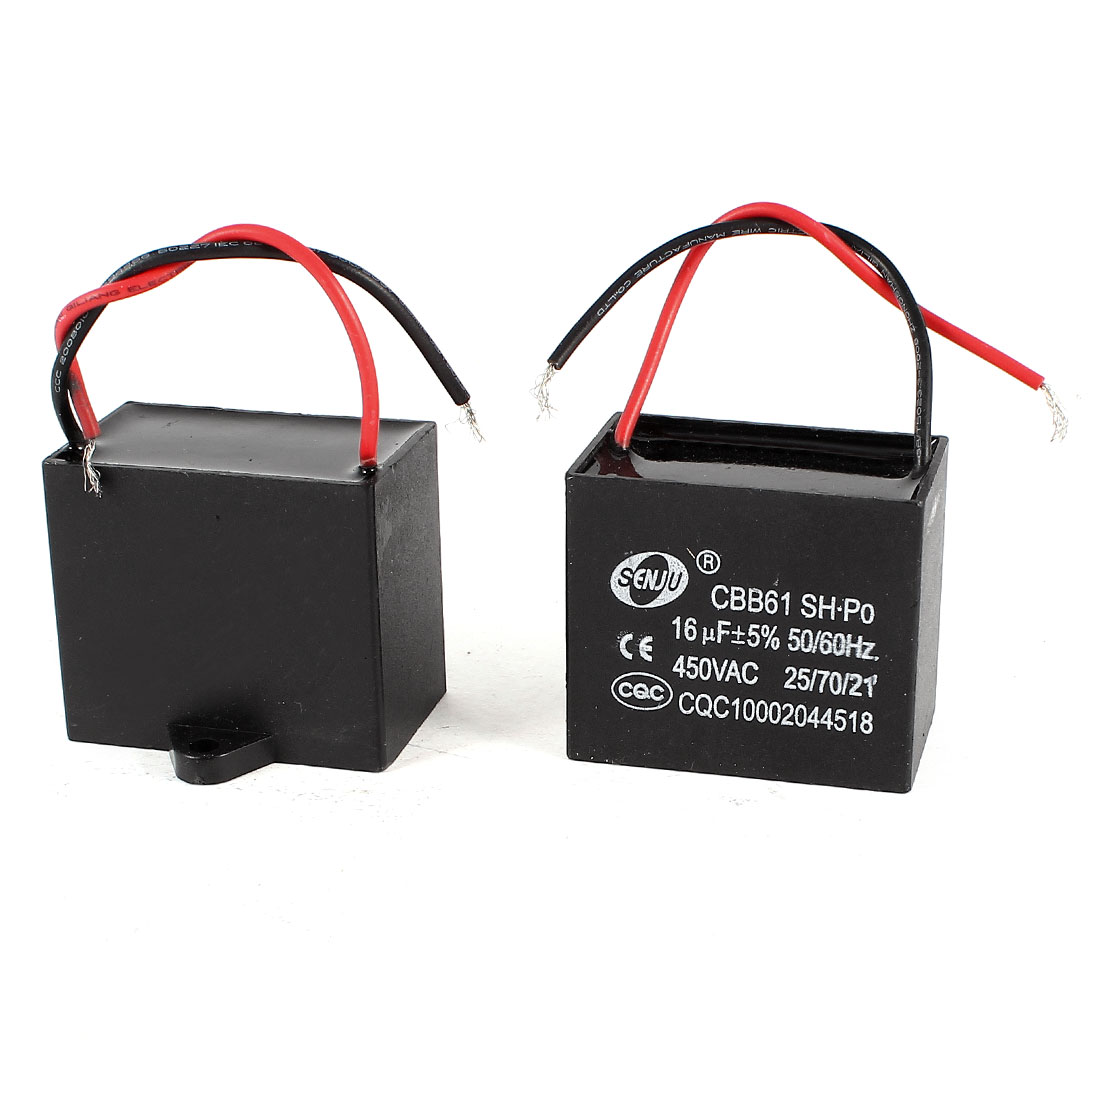 AC 450V 16uF 9cm Wired Metalized Polypropylene Film Motor Run Capacitor 2 Pieces